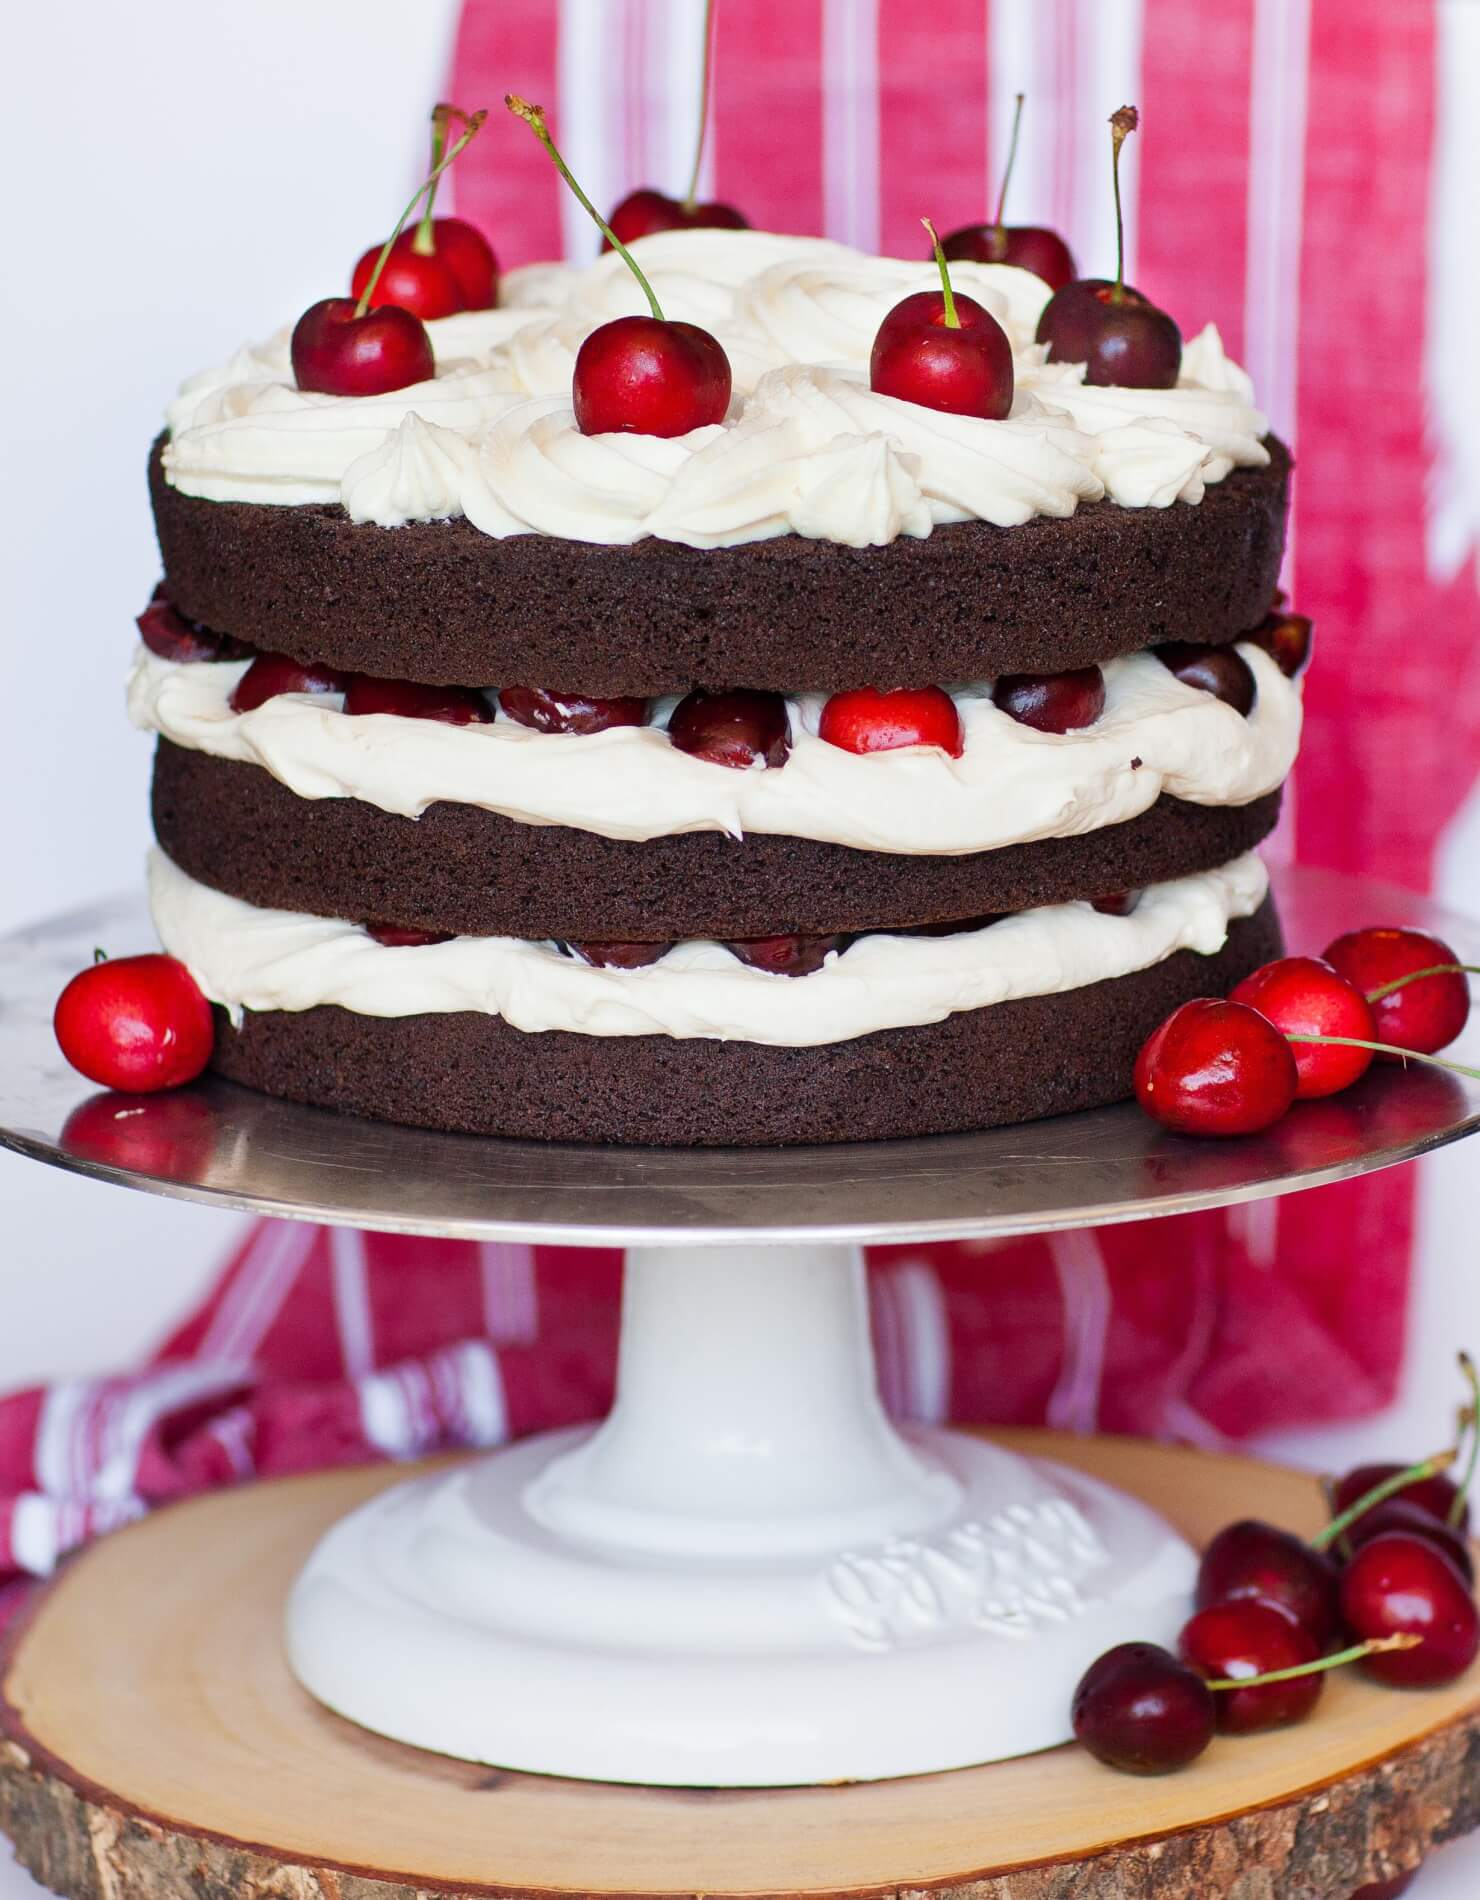 Chocolate Cherry Cake - Black Forest Cake